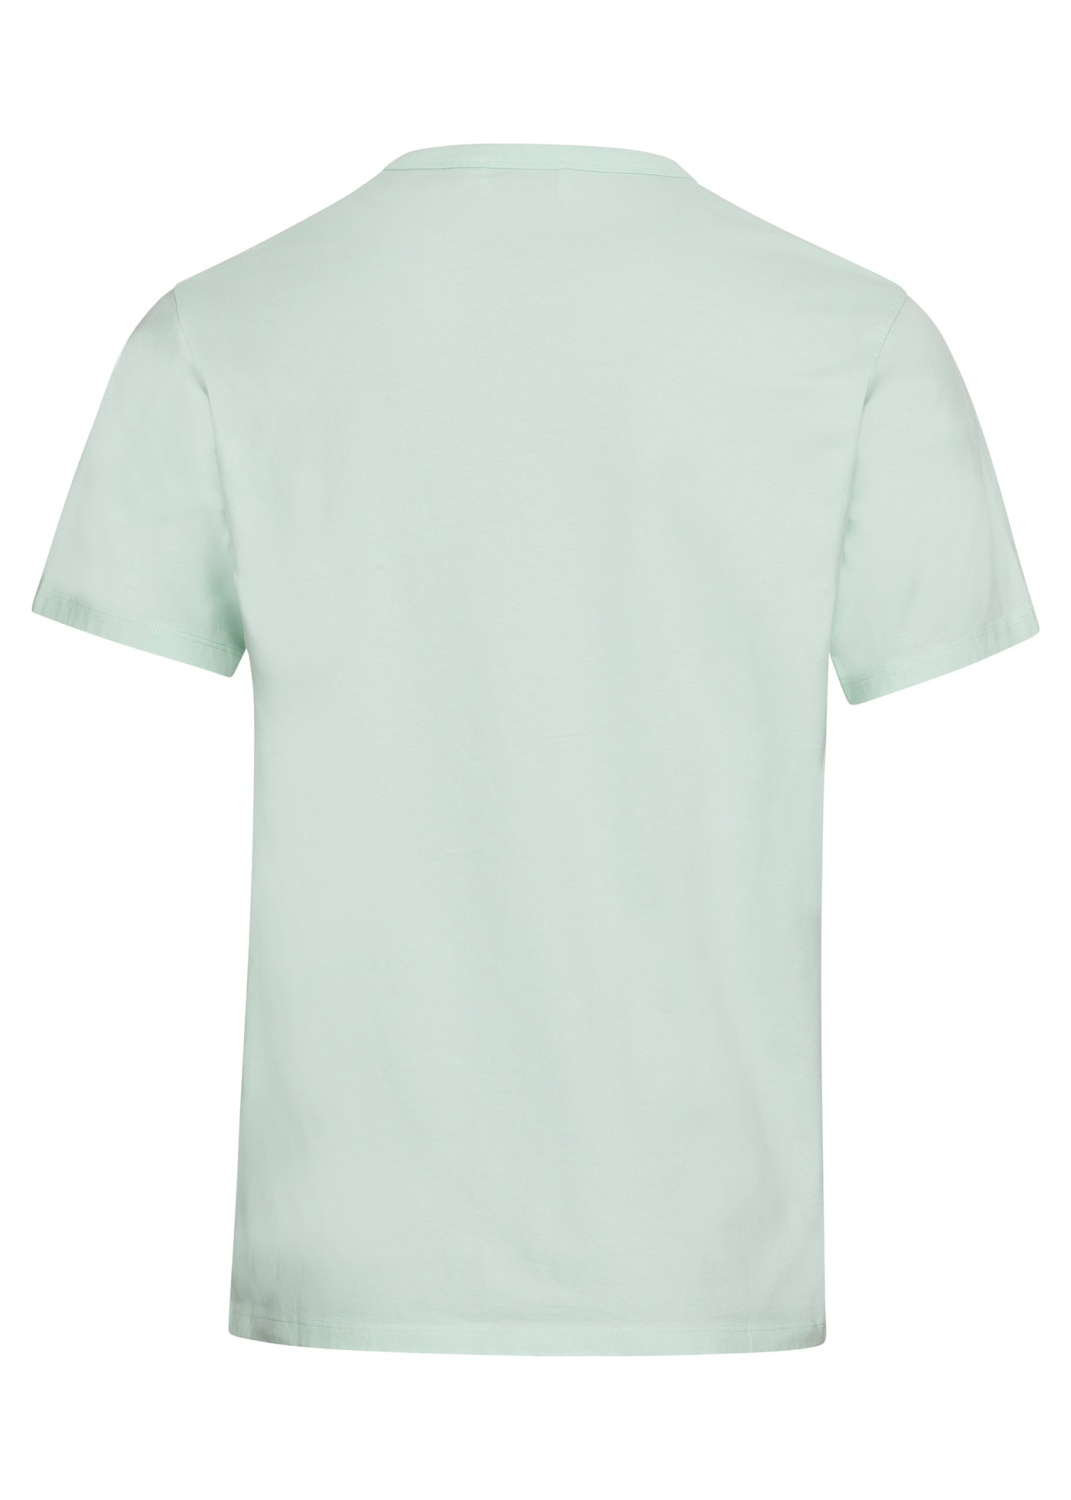 CHILLAX FOX PATCH CLASSIC TEE-SHIRT image number 1